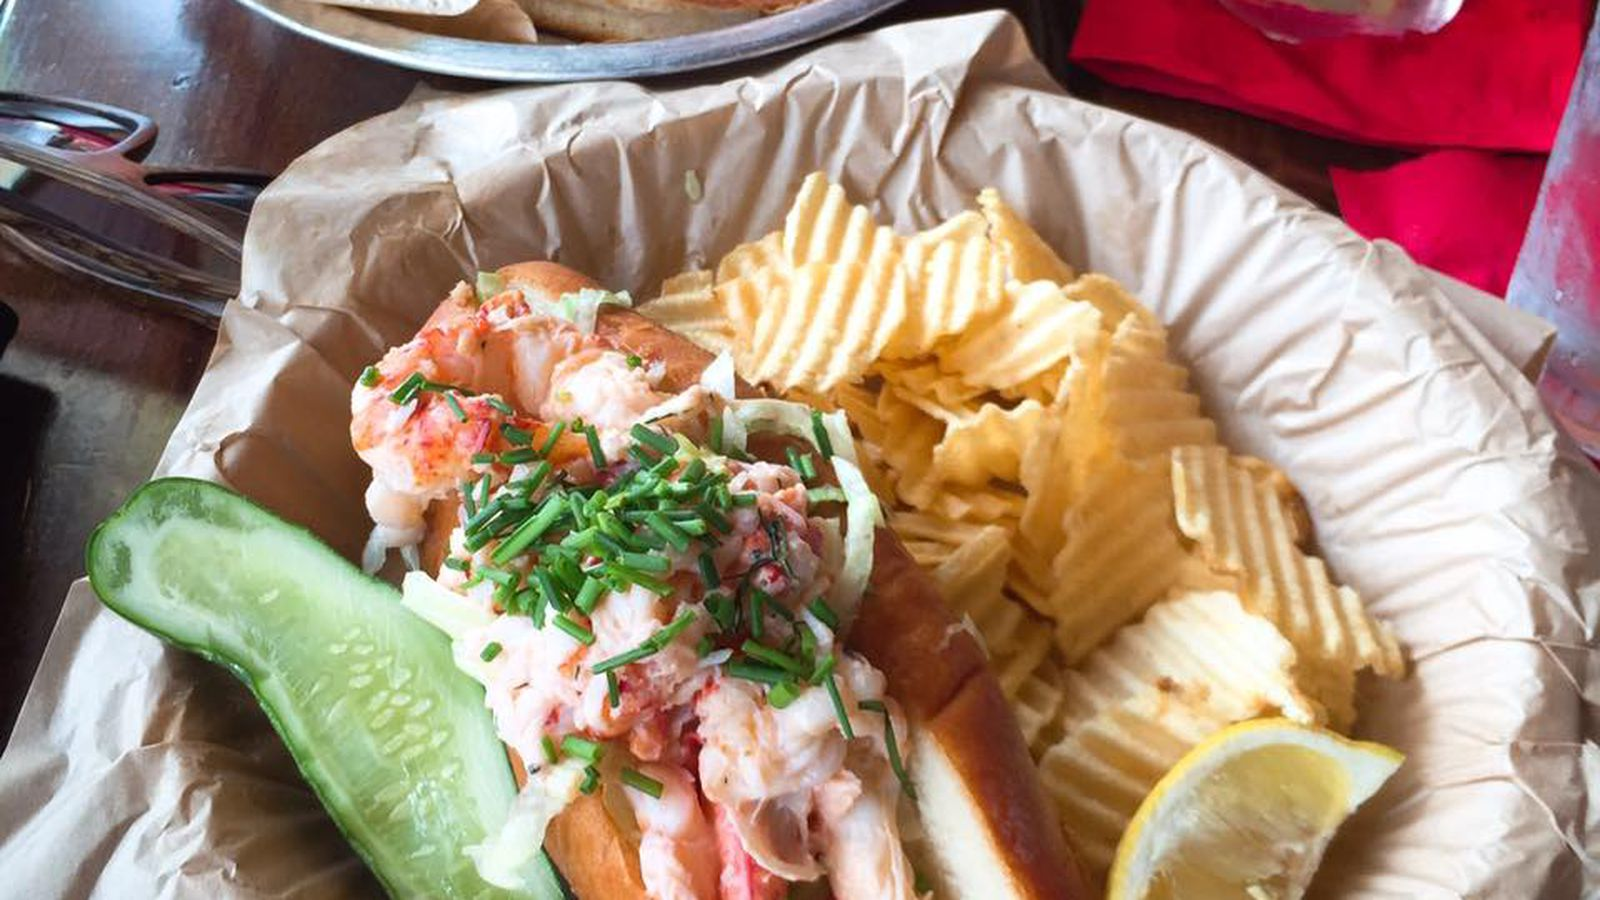 Mudgie's Reaches Peak Lobster Roll Mania, Introduces 'Shifts' - Eater Detroit